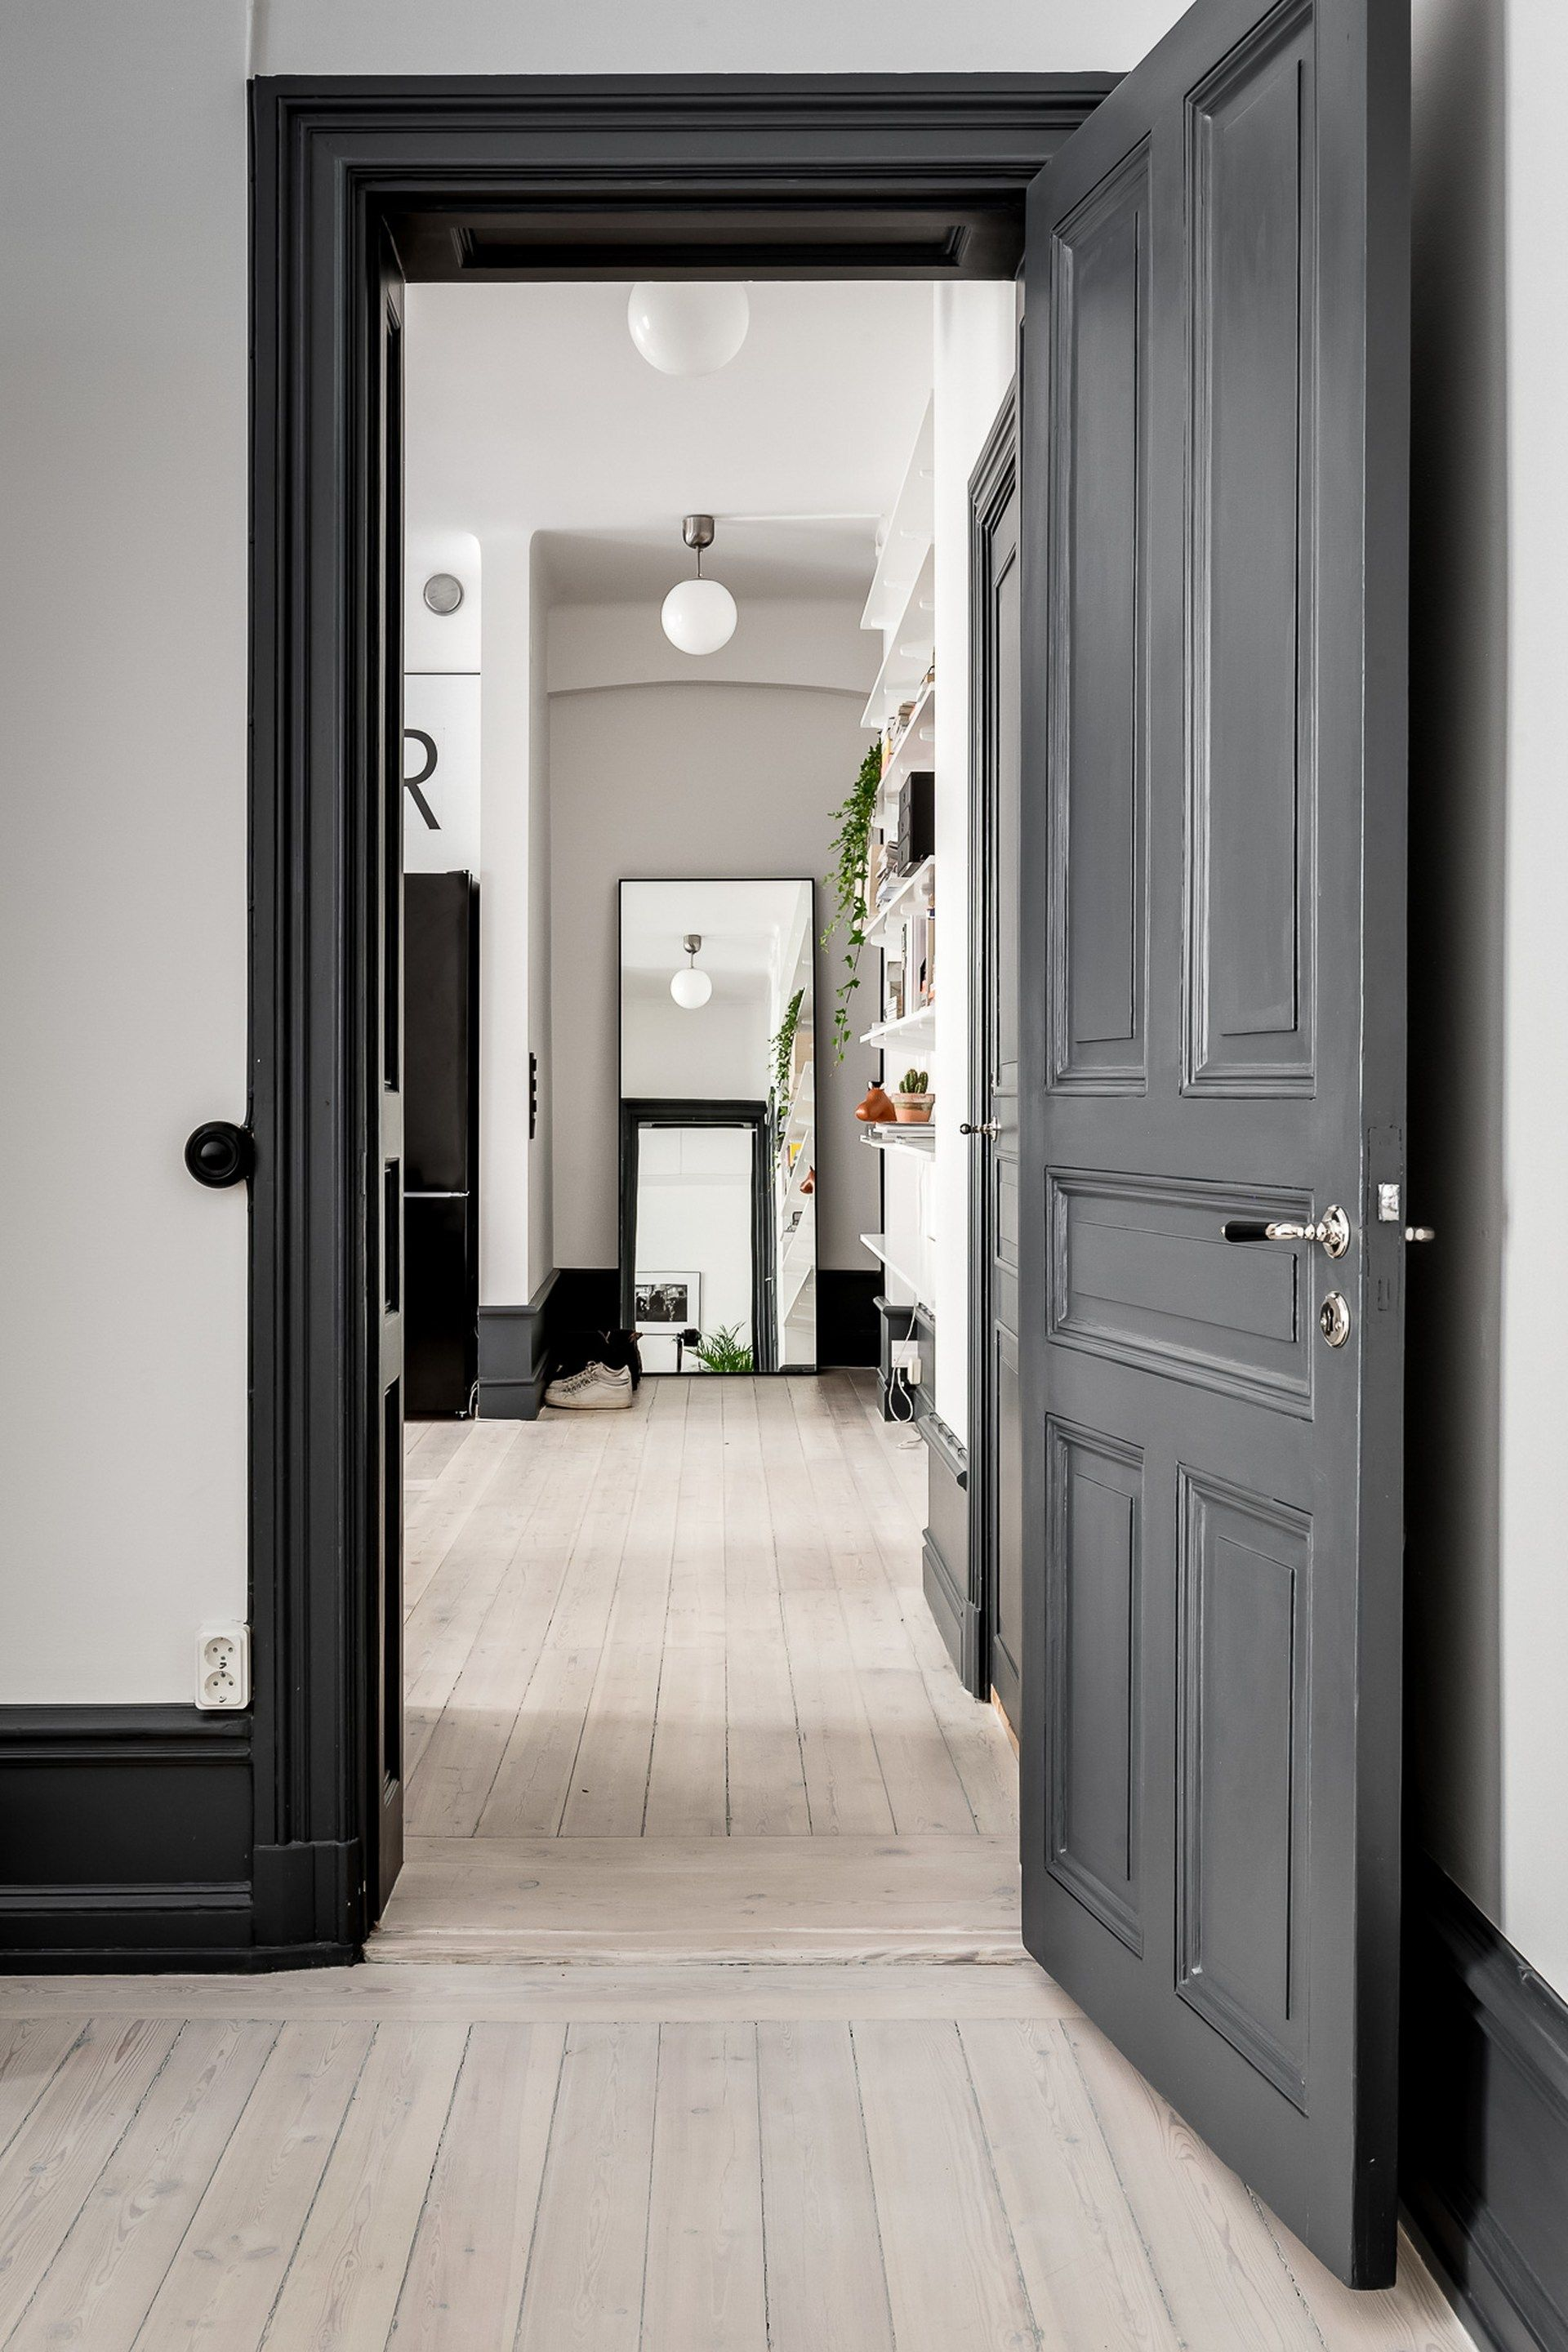 Design You Room: Grey Interior Doors, Black